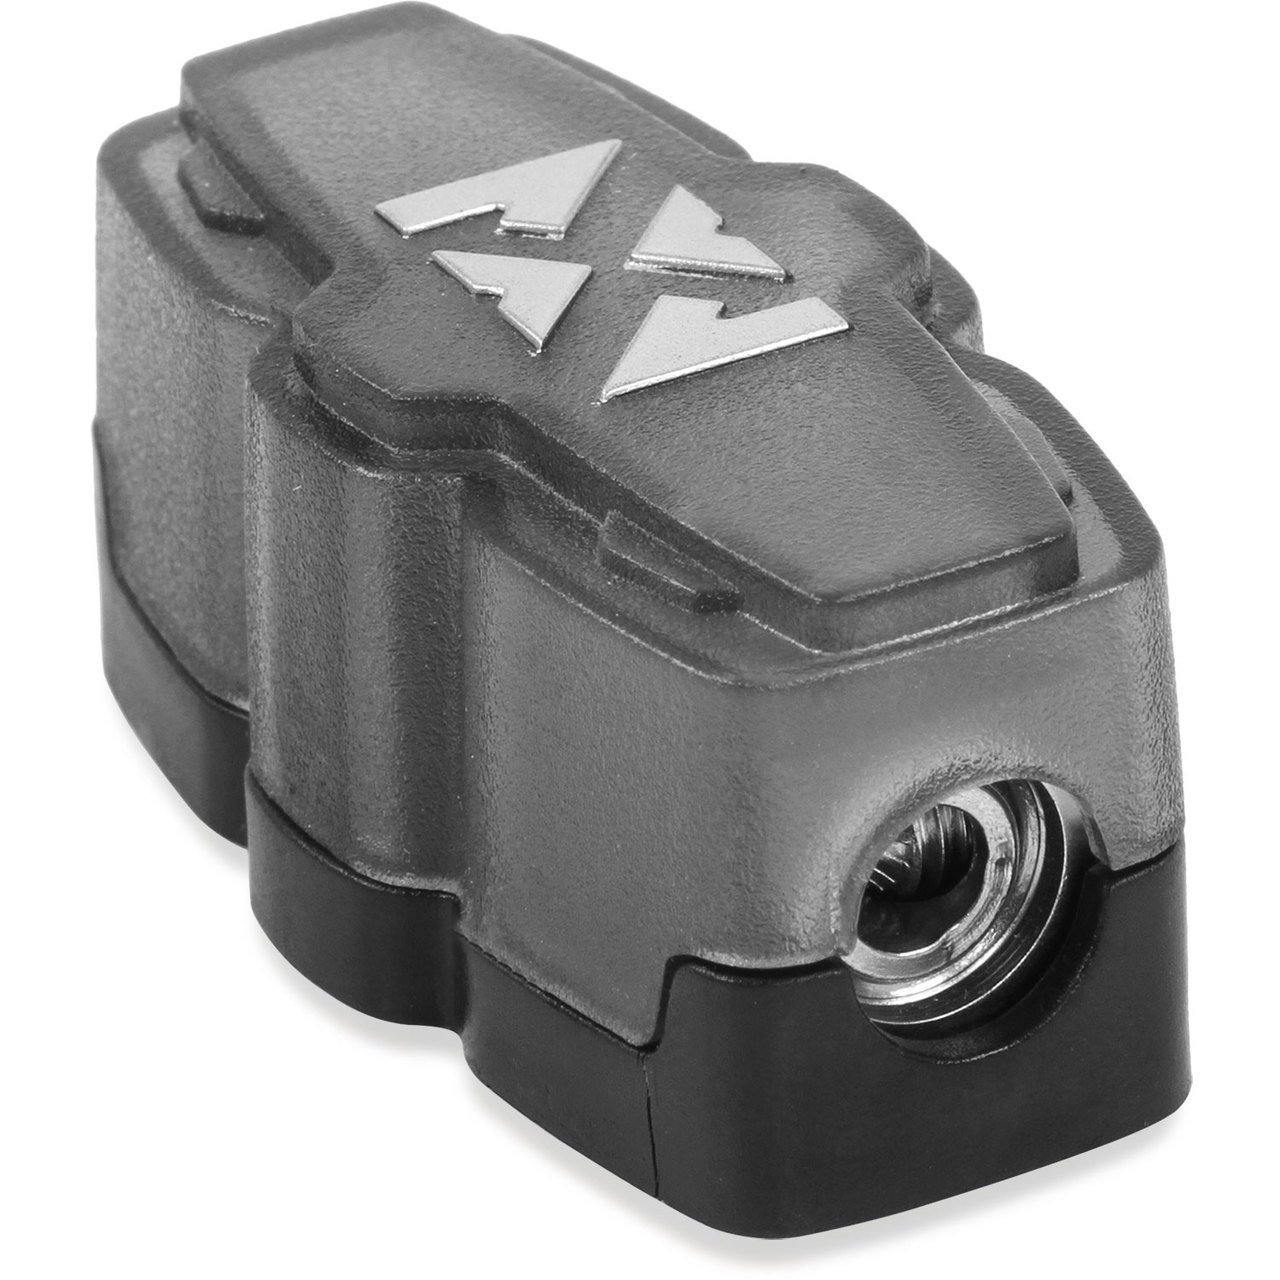 NVX XMFH48 World's Smallest AFS / Mini ANL Fuse Holder